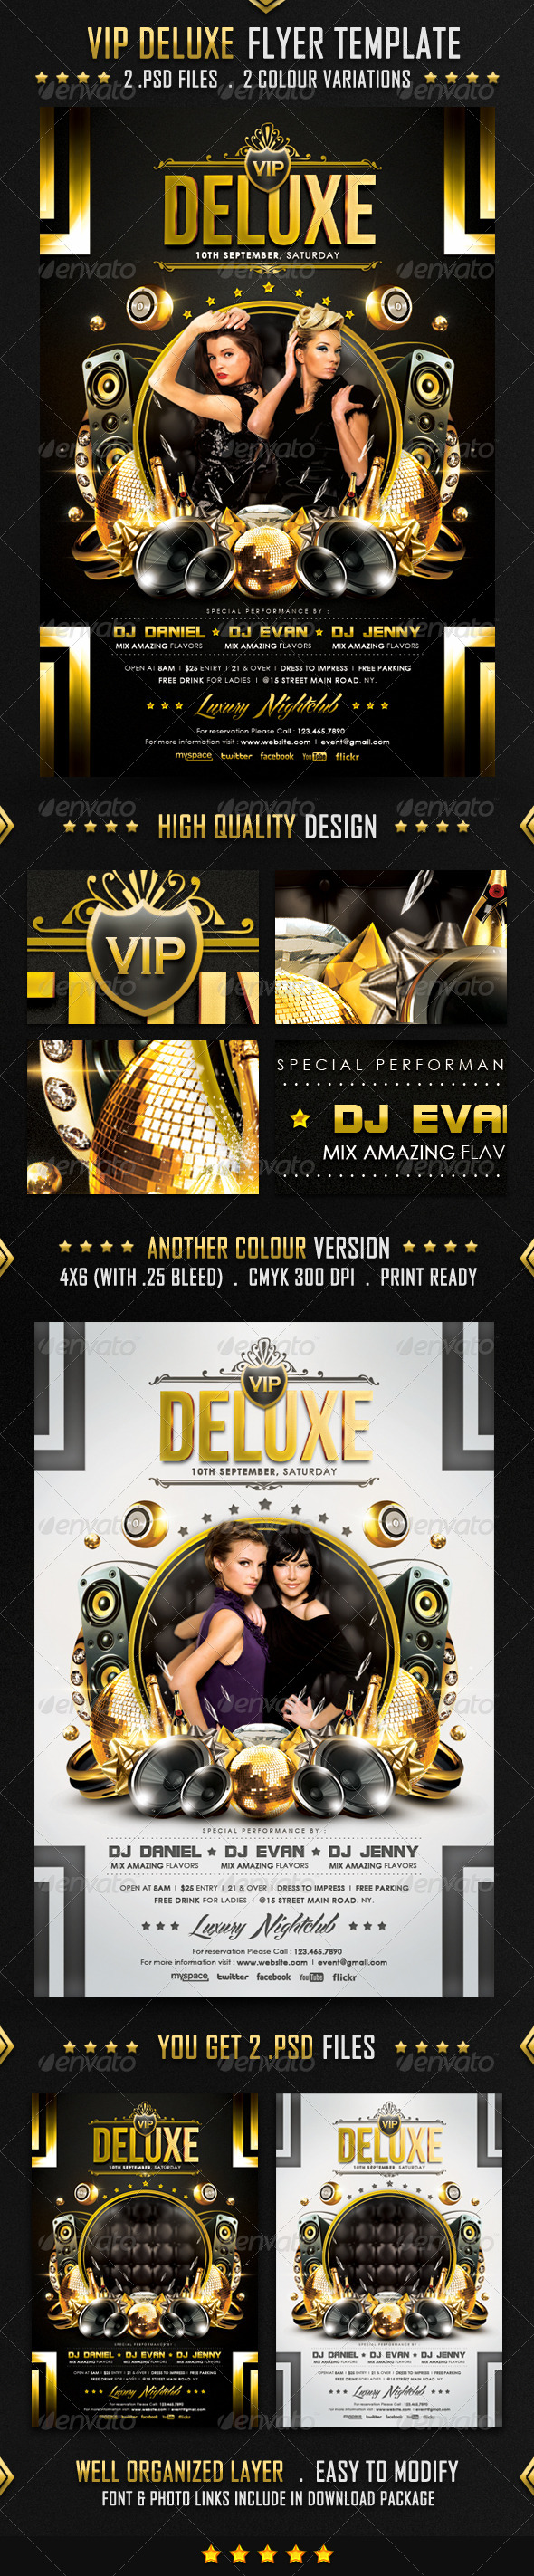 GraphicRiver VIP Deluxe Flyer Template 4119784